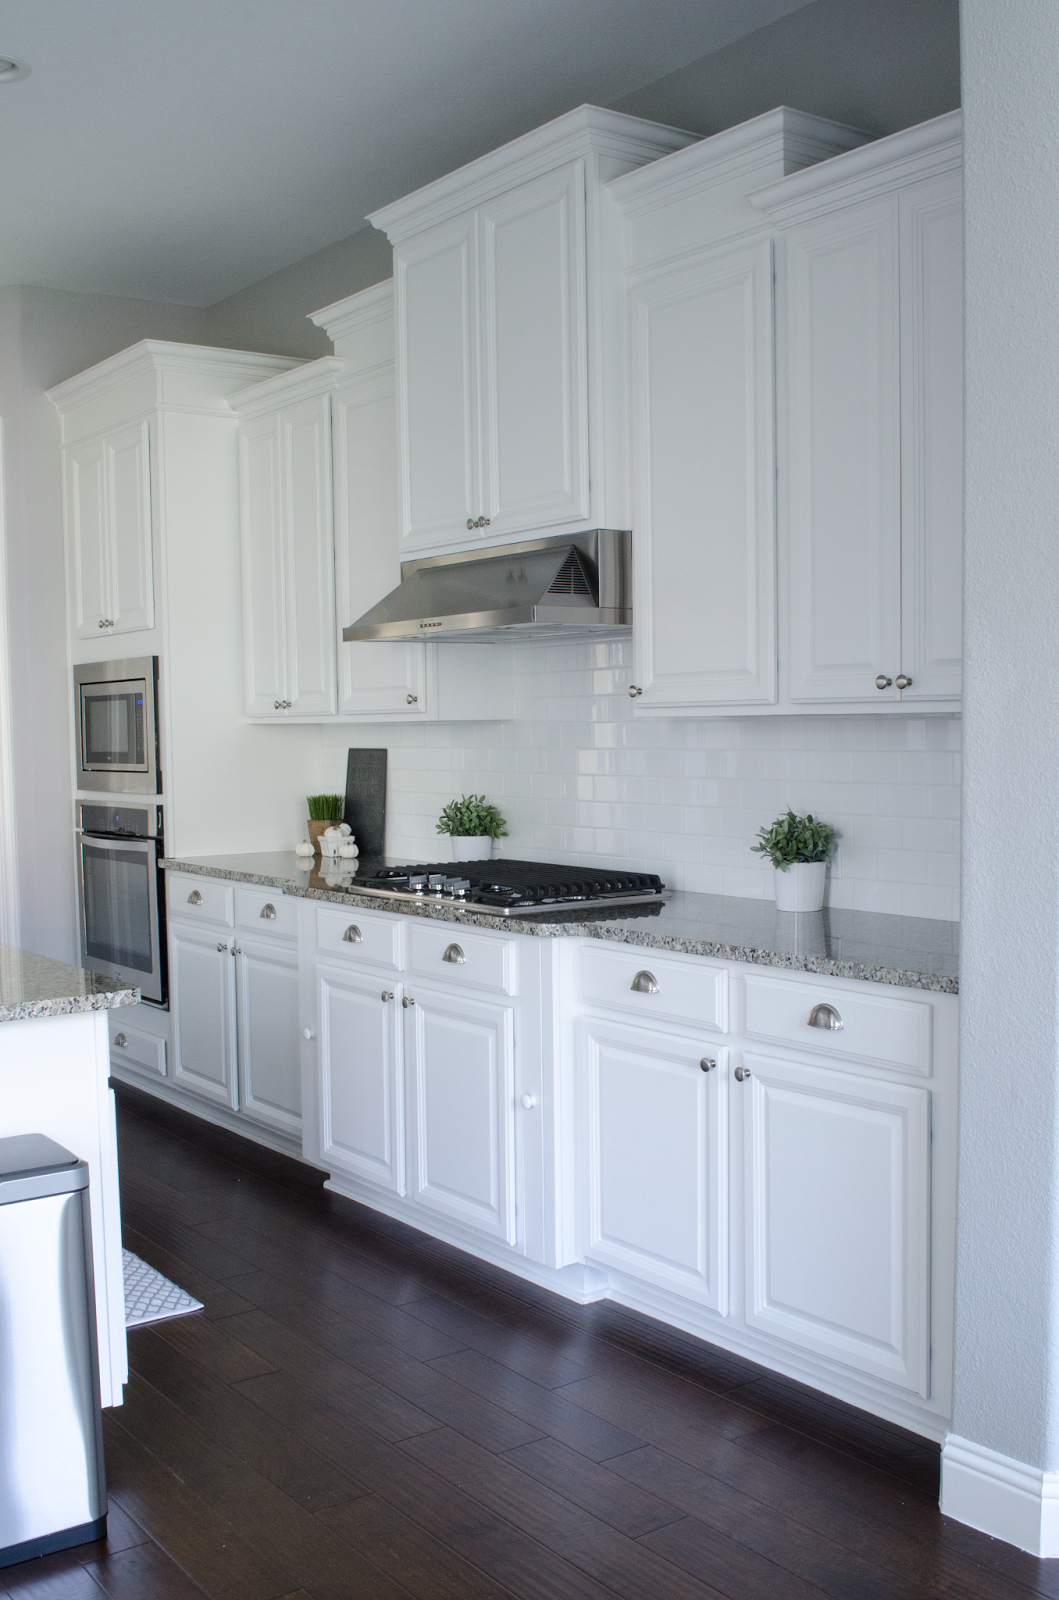 provide refinishing requests and spray cupboard cupboards often burlington kitchen painting cabinet img get advice doors on in mississauga milton to i